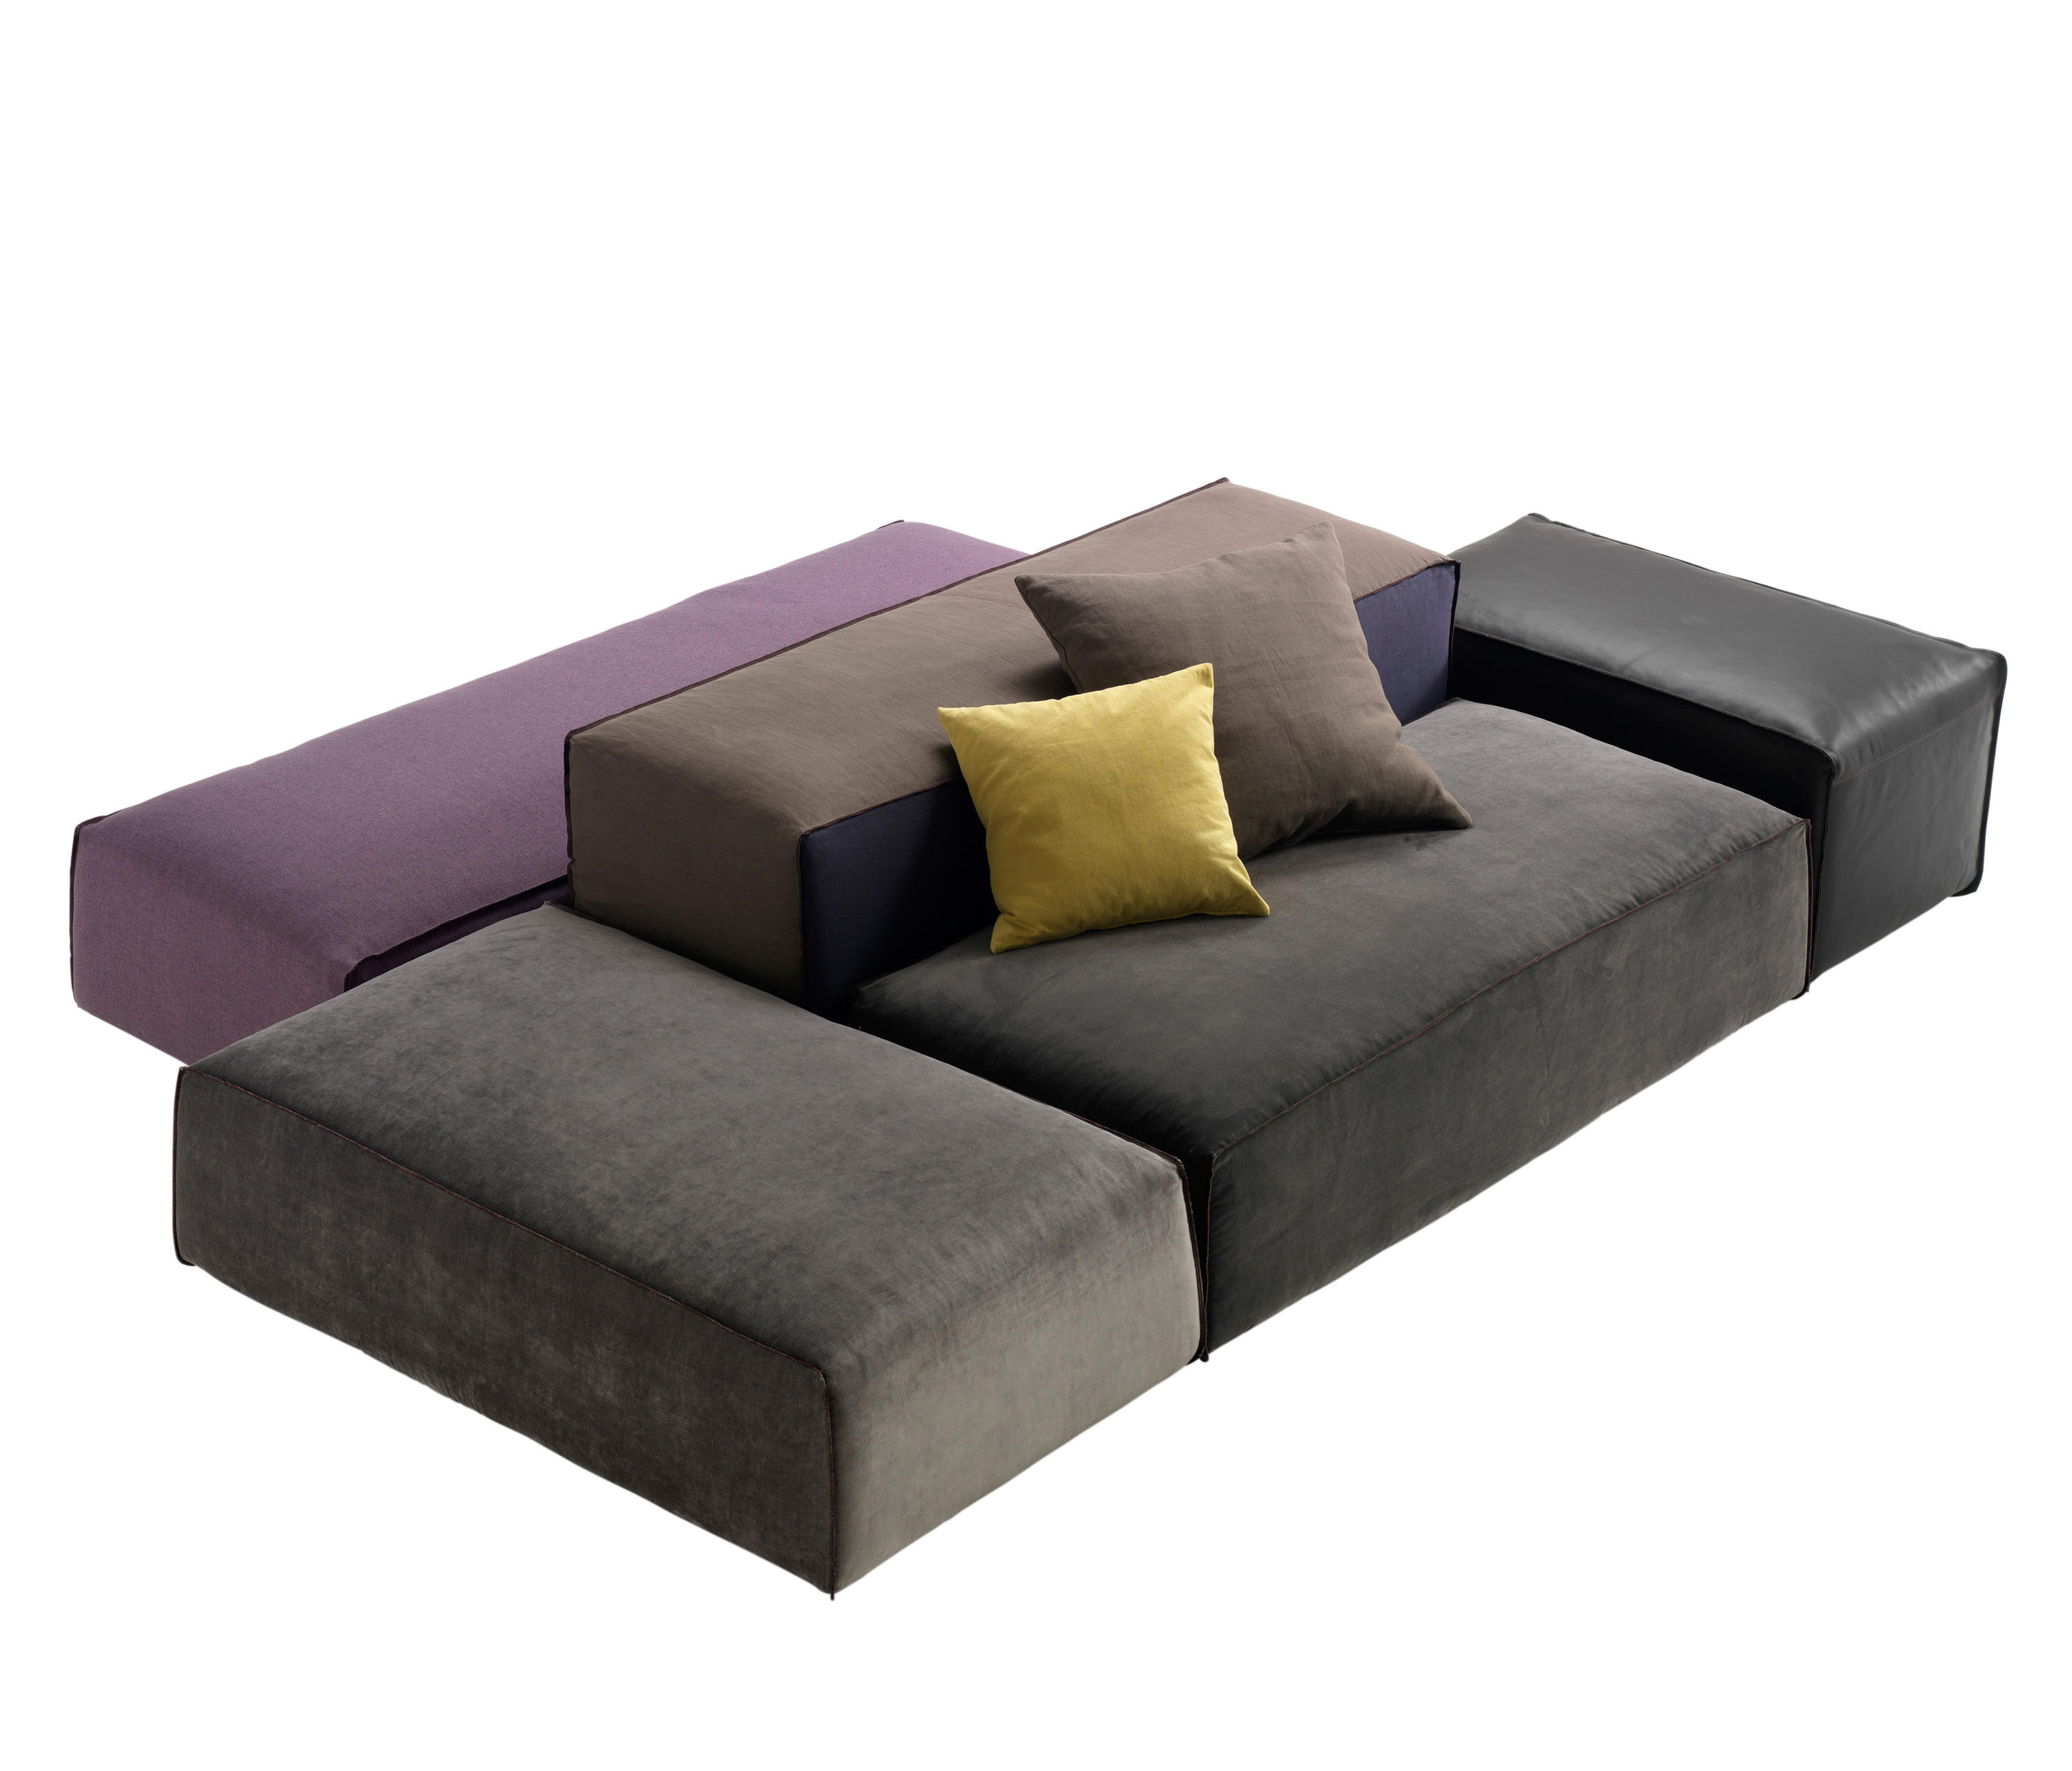 modular sofa system m a s sofa system by patricia urquiola. Black Bedroom Furniture Sets. Home Design Ideas